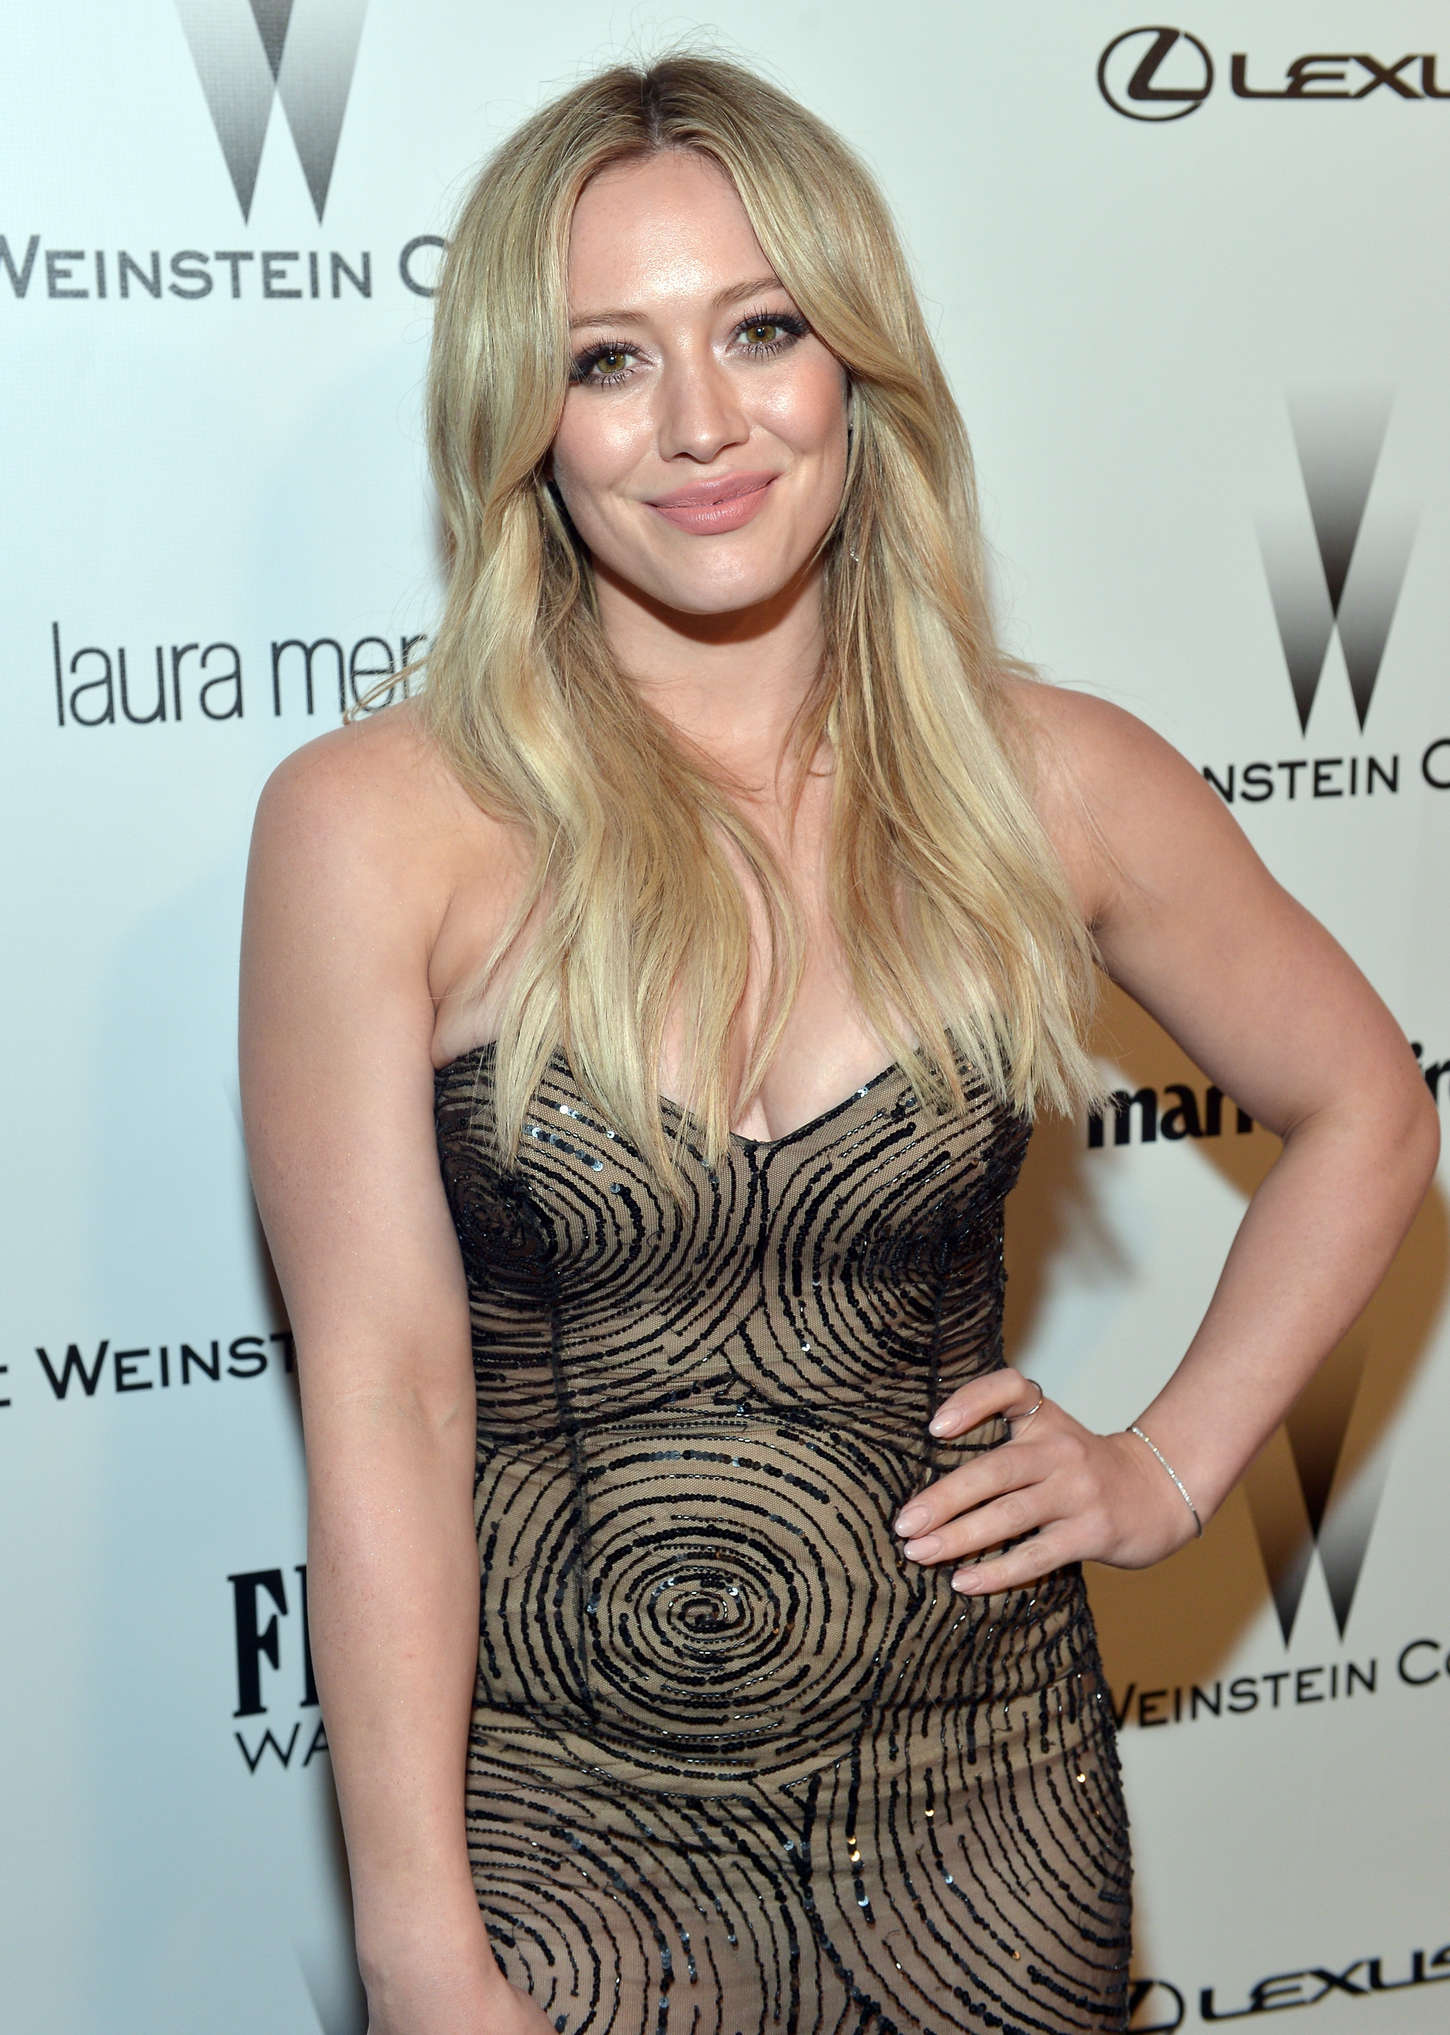 Hilary Duff 2015 : Hilary Duff: 2015 The Weinstein Company and Netflixs Golden Globes Party -02